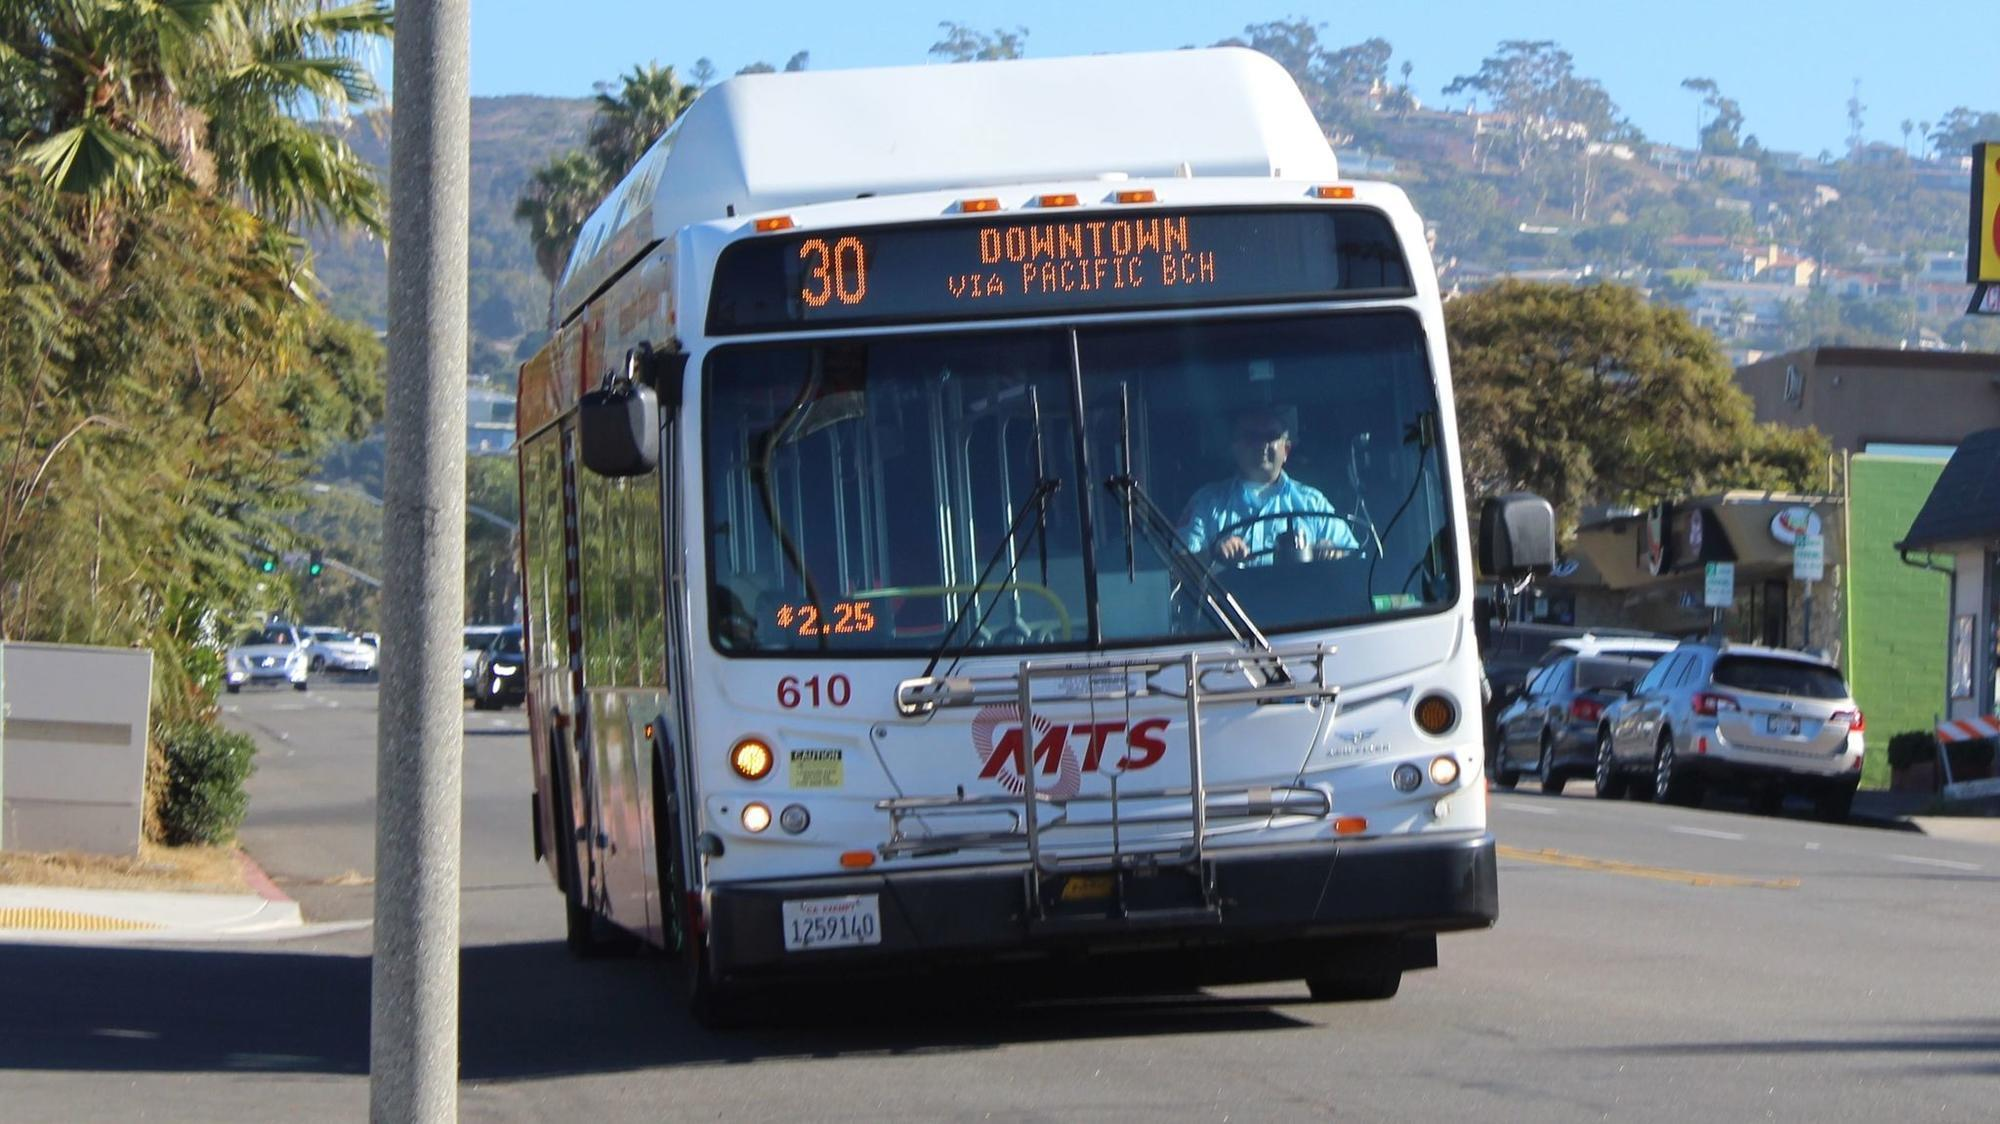 The 30 is the only bus to catch in La Jolla.